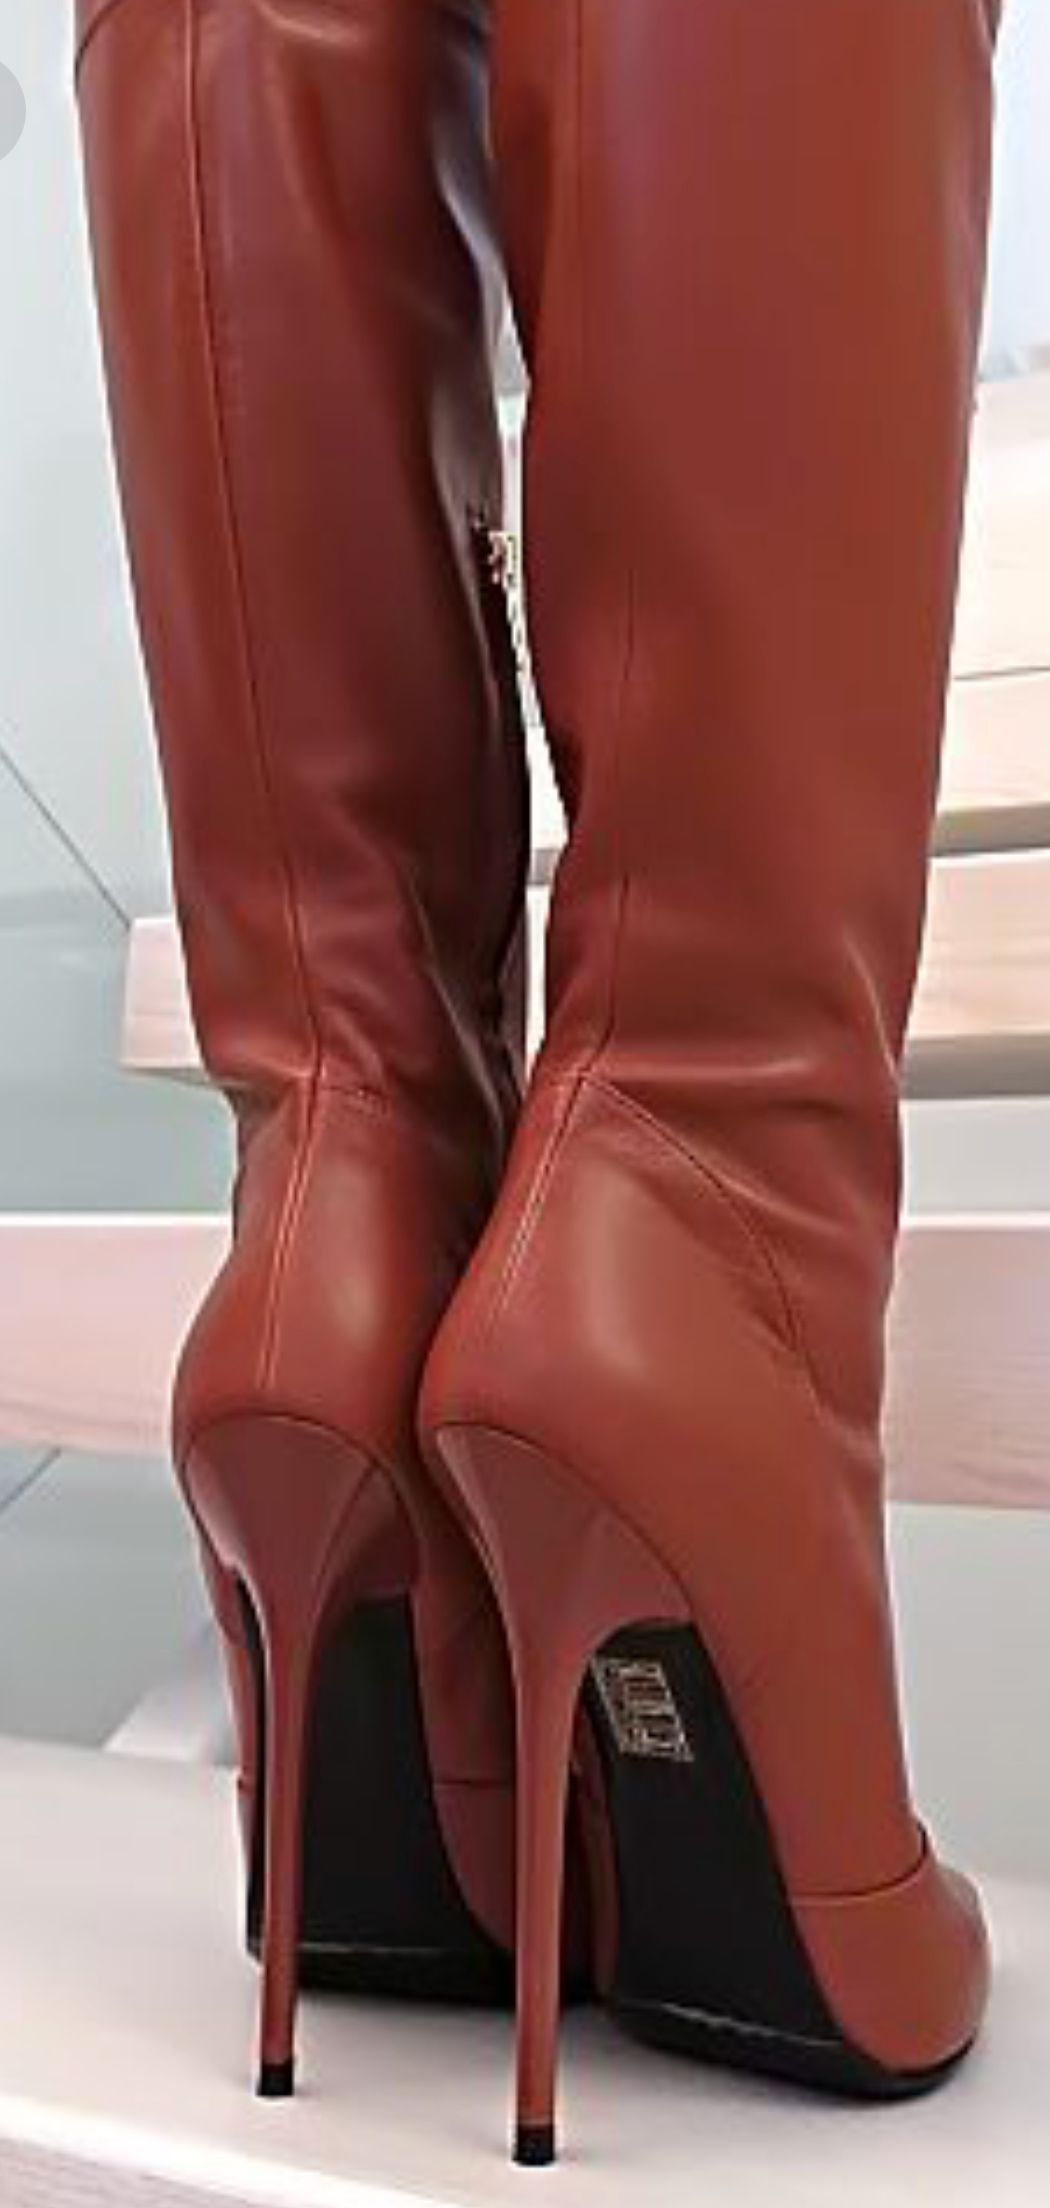 c24bedee65ae Chaussures Talons Bottes. Talons Hauts Sexy. Bottes À Talons. Really like  these! Bottes Femme